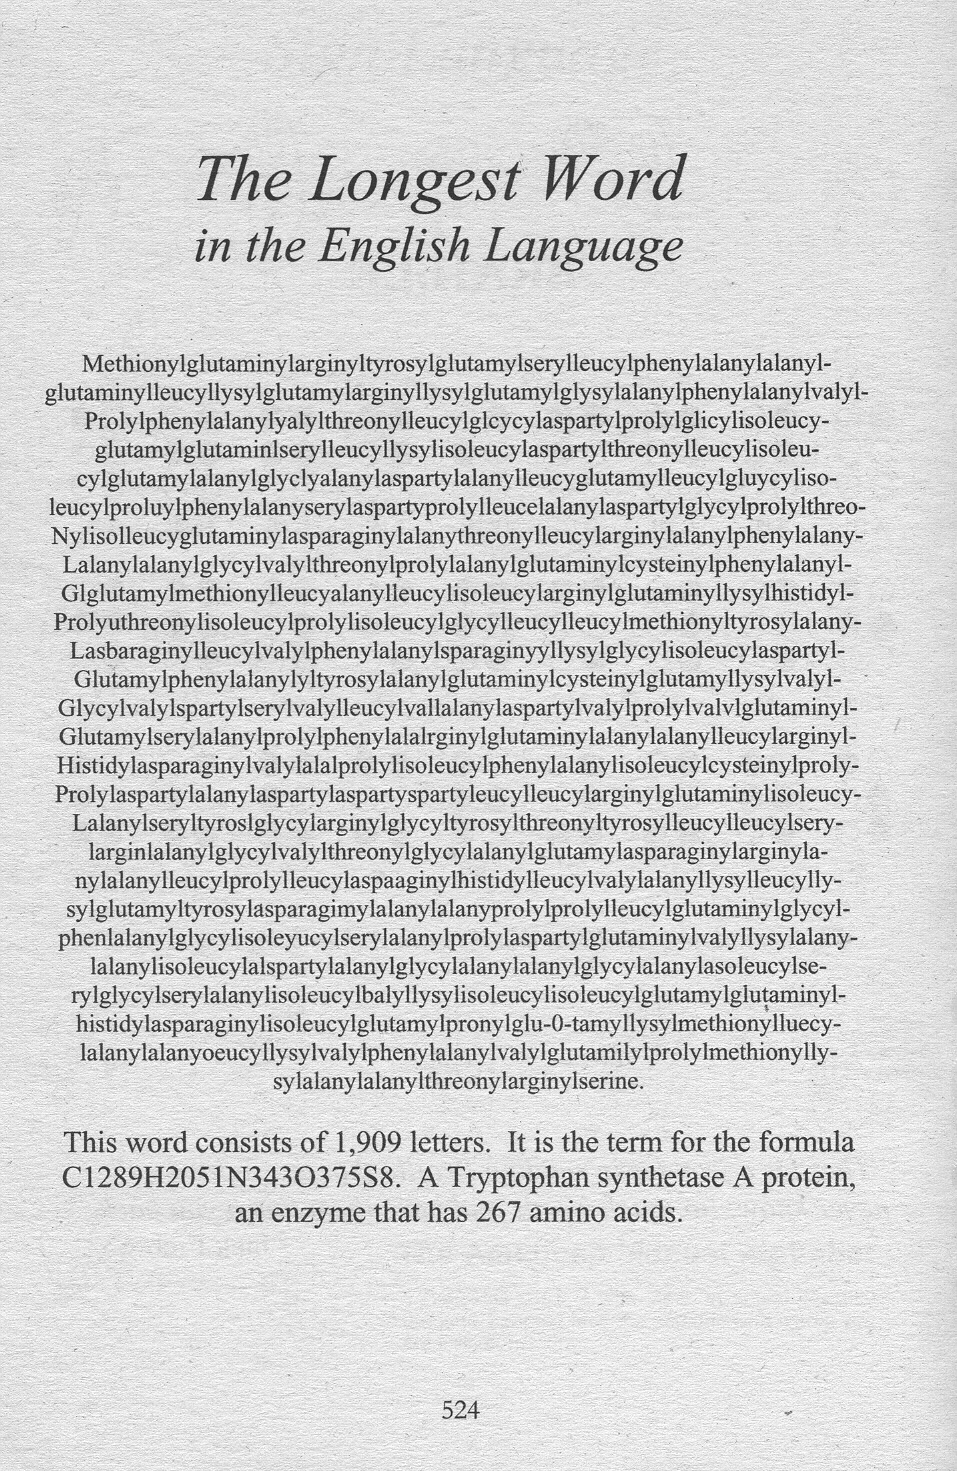 what is the longest word in the English language